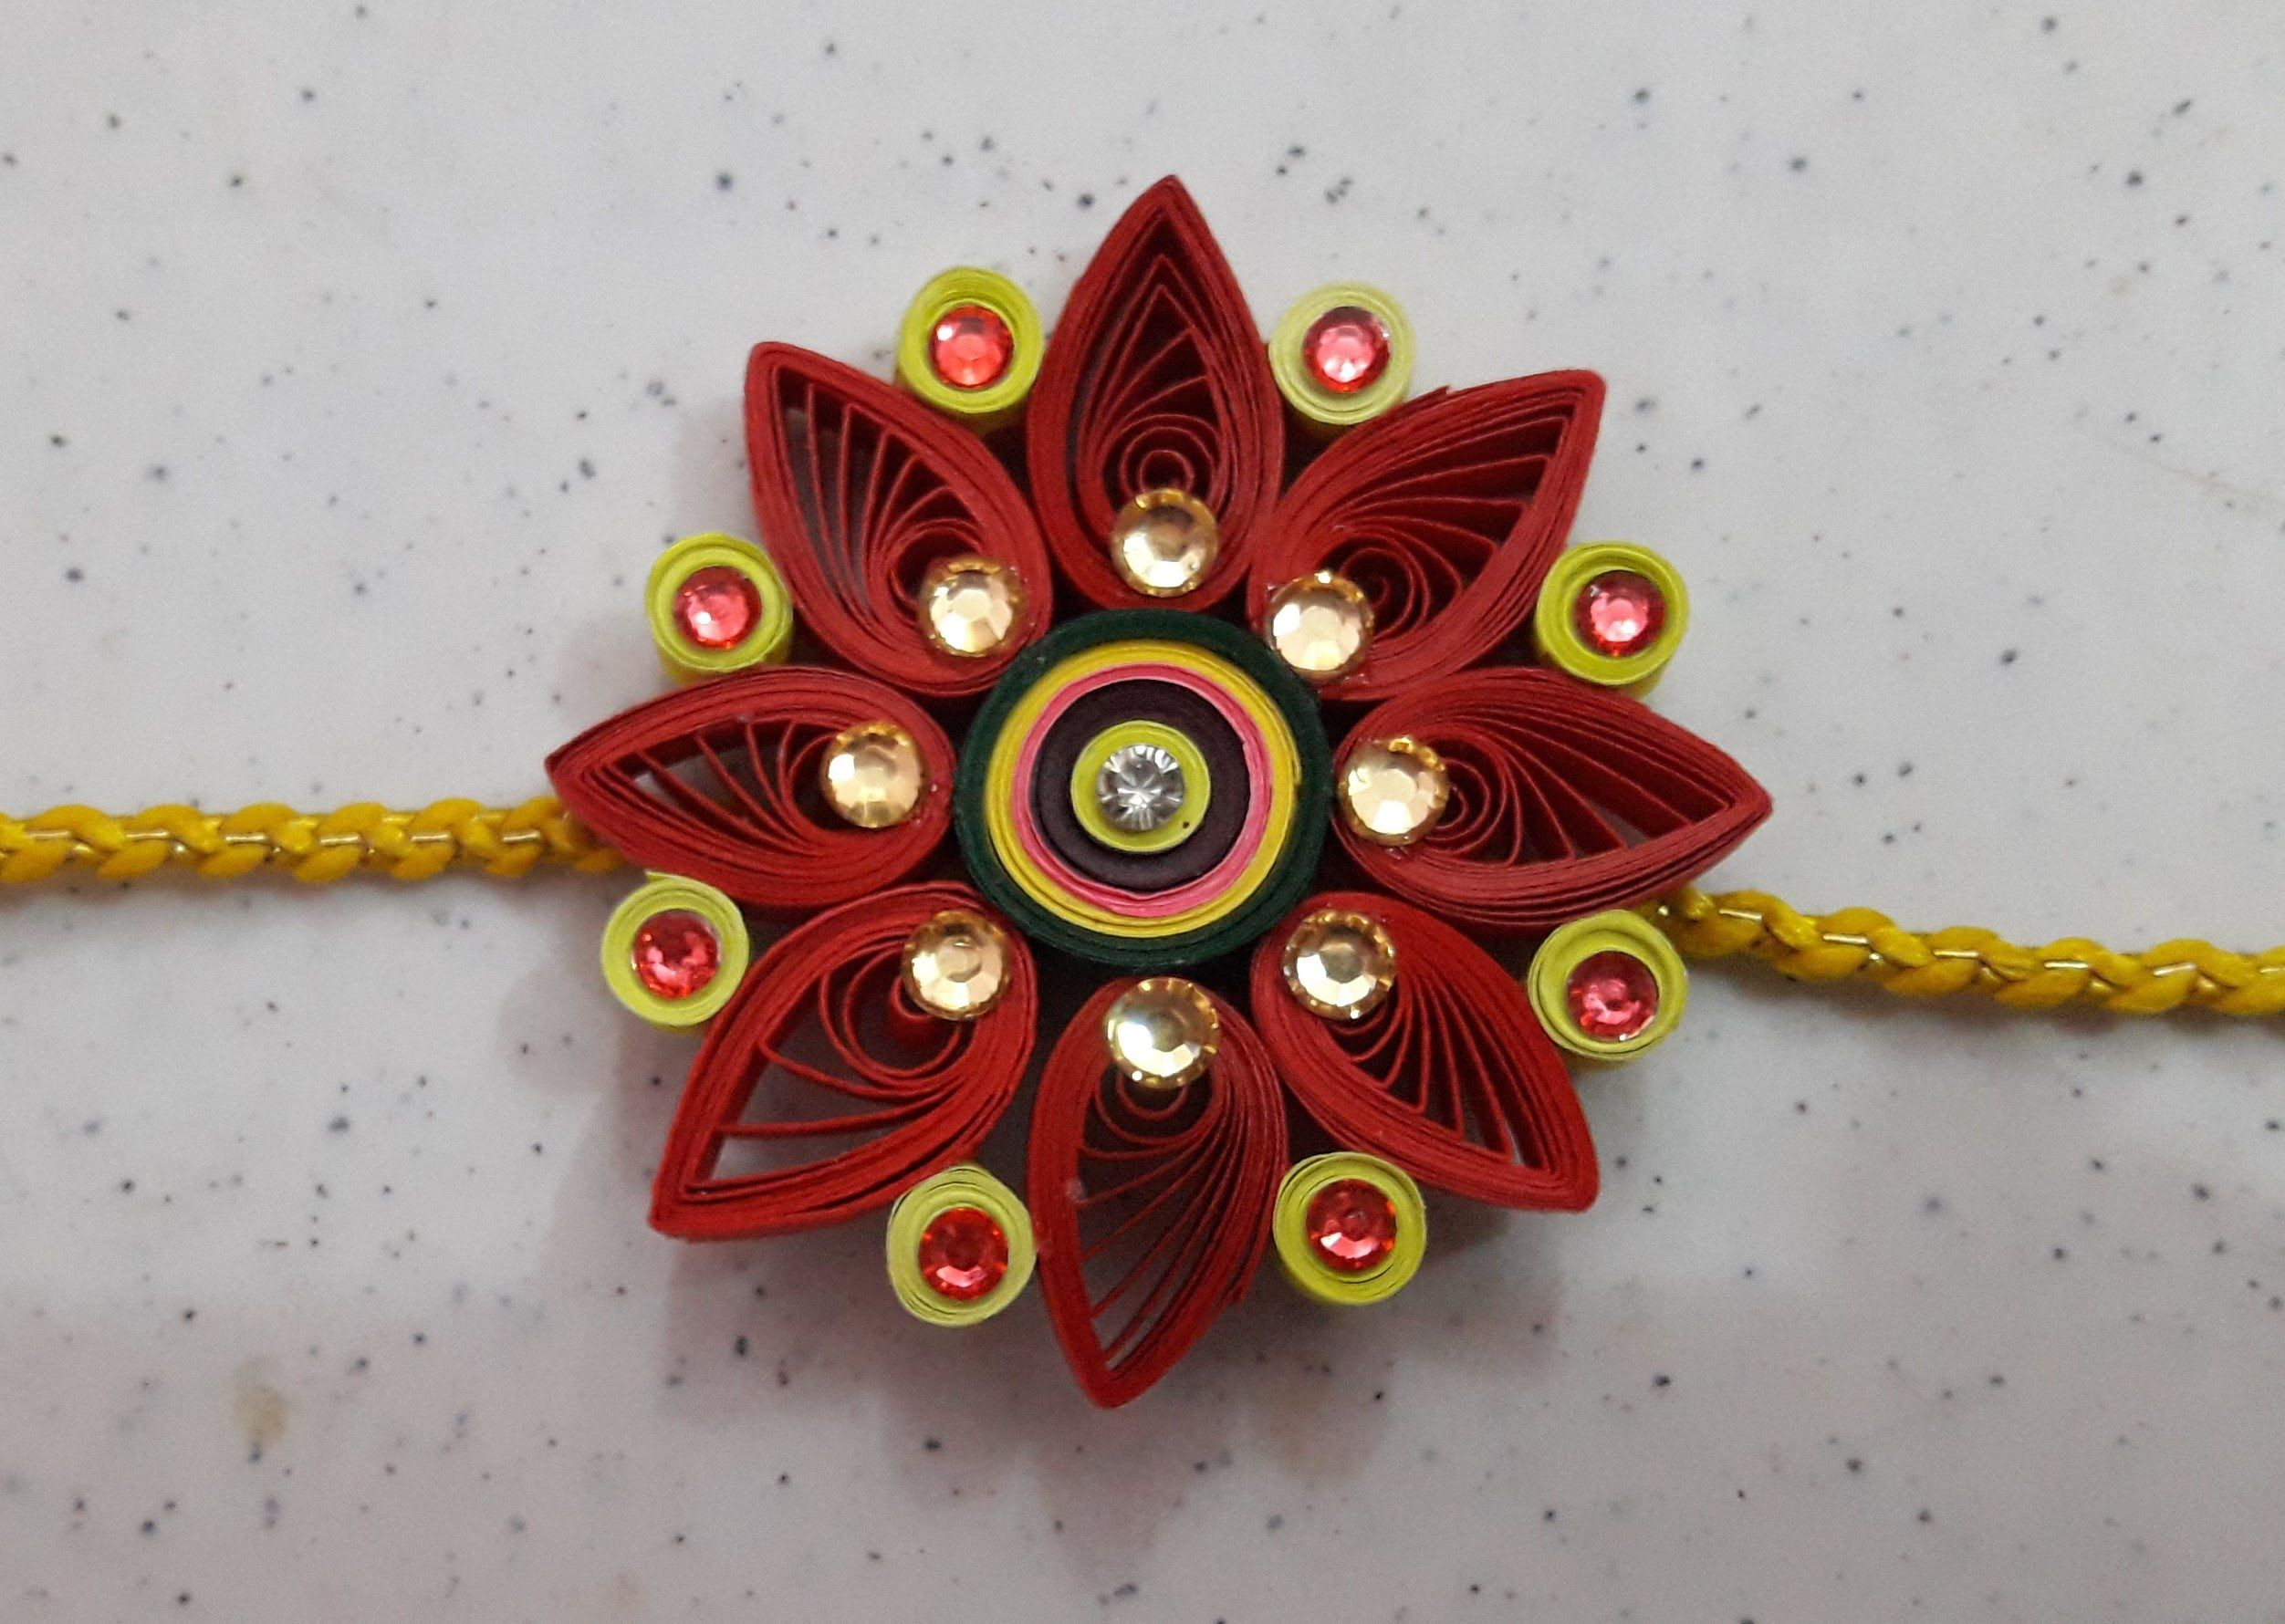 How to make quilling rakhi at home pinterest in this video we are making quilling lovely rakhi in this we are use toothpick fevicol colorful paper strip laces stones dhlflorist Gallery